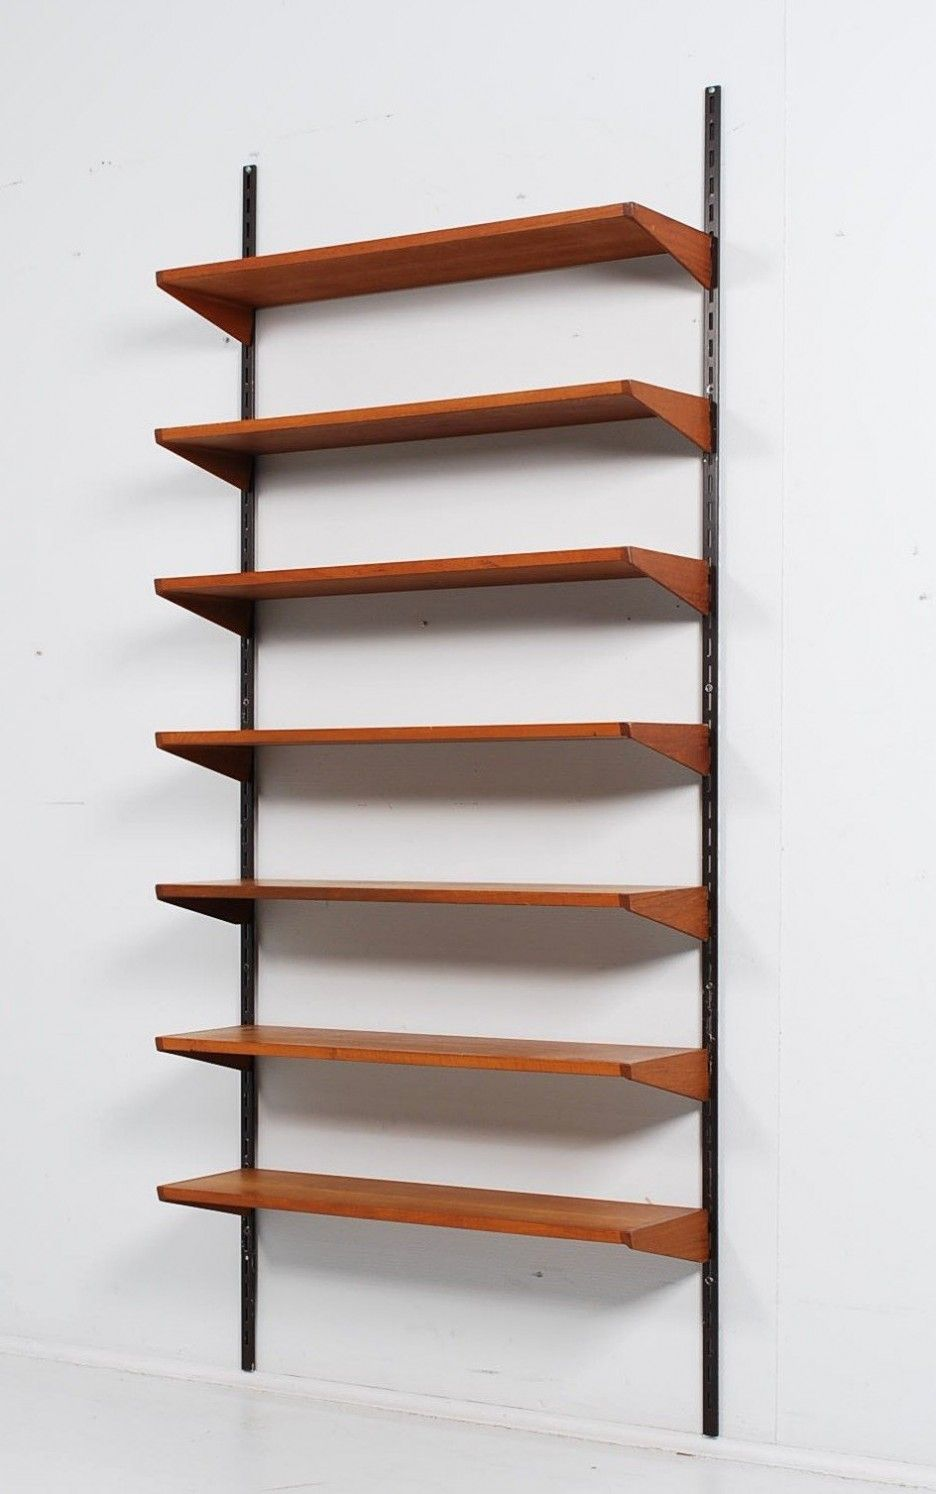 Diy Wood Wall Shelves To Get Those Bulky Bookcases Out